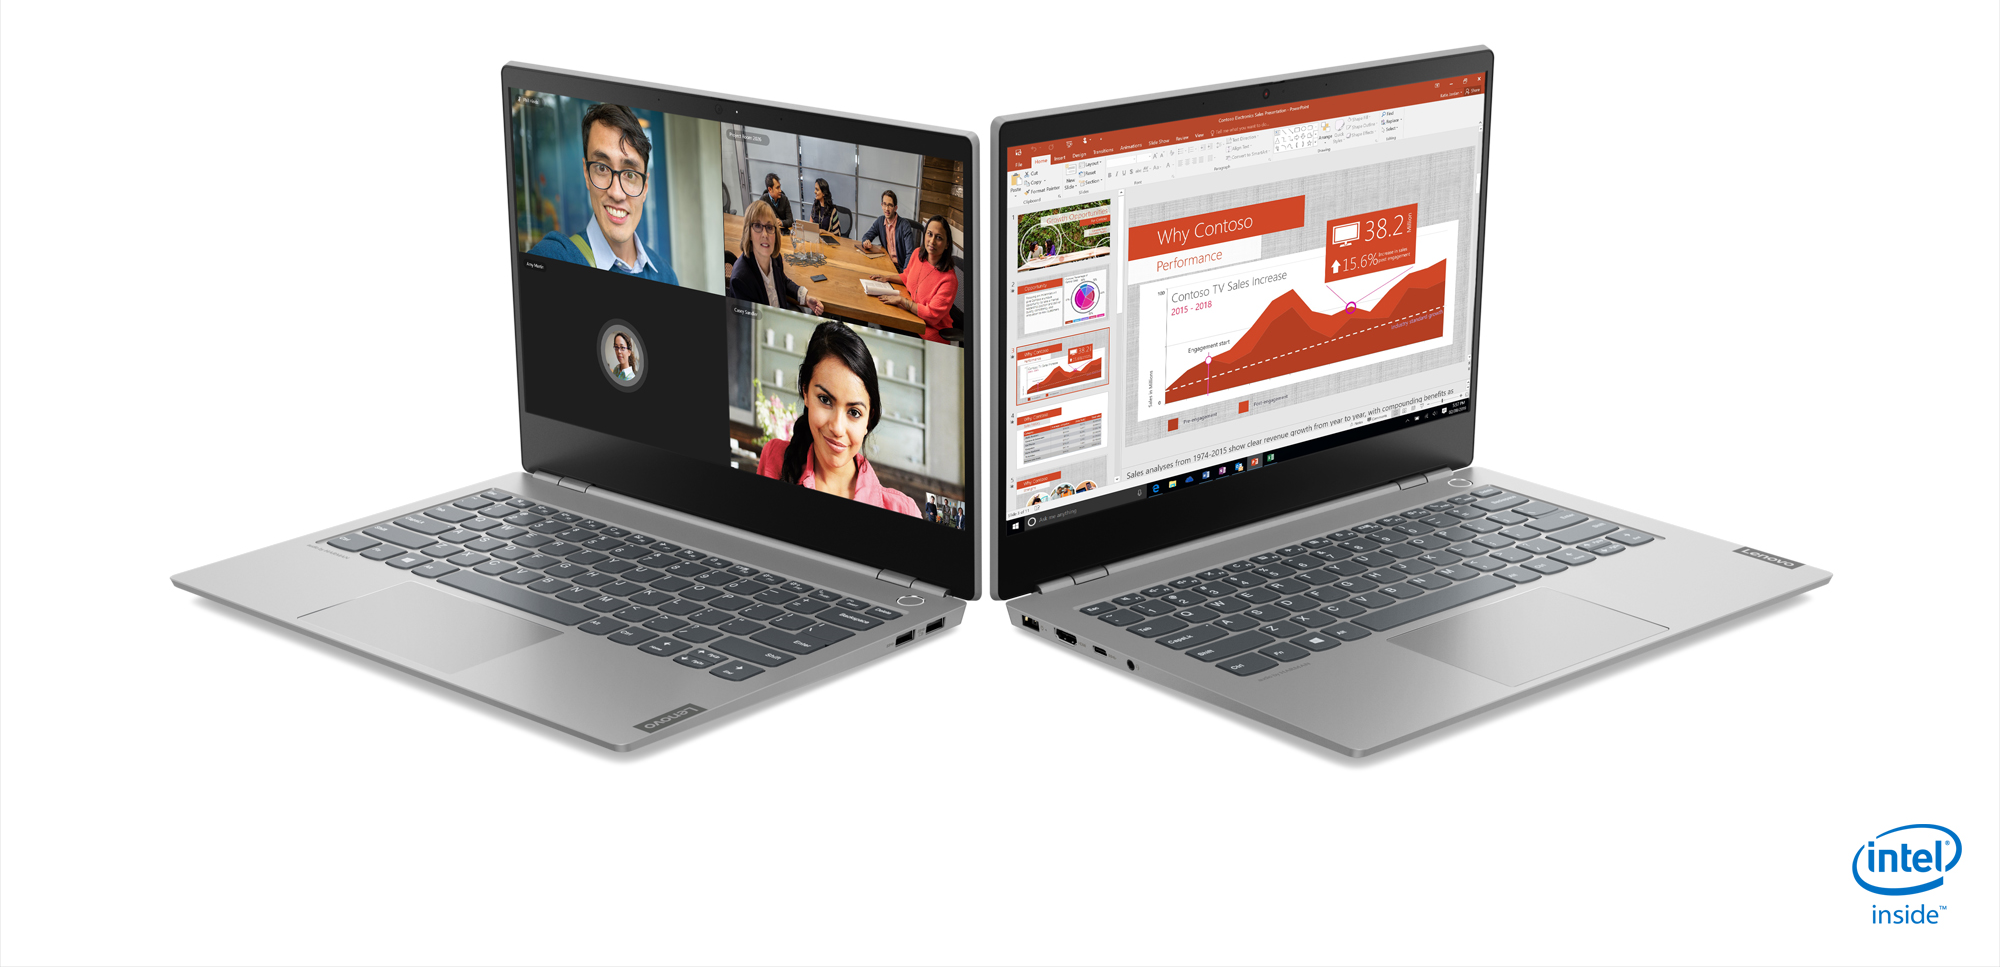 New Lenovo ThinkBook 13s and 14s laptops - built for business Lenovo_Thinkbook_Compare_Size_INTEL.png